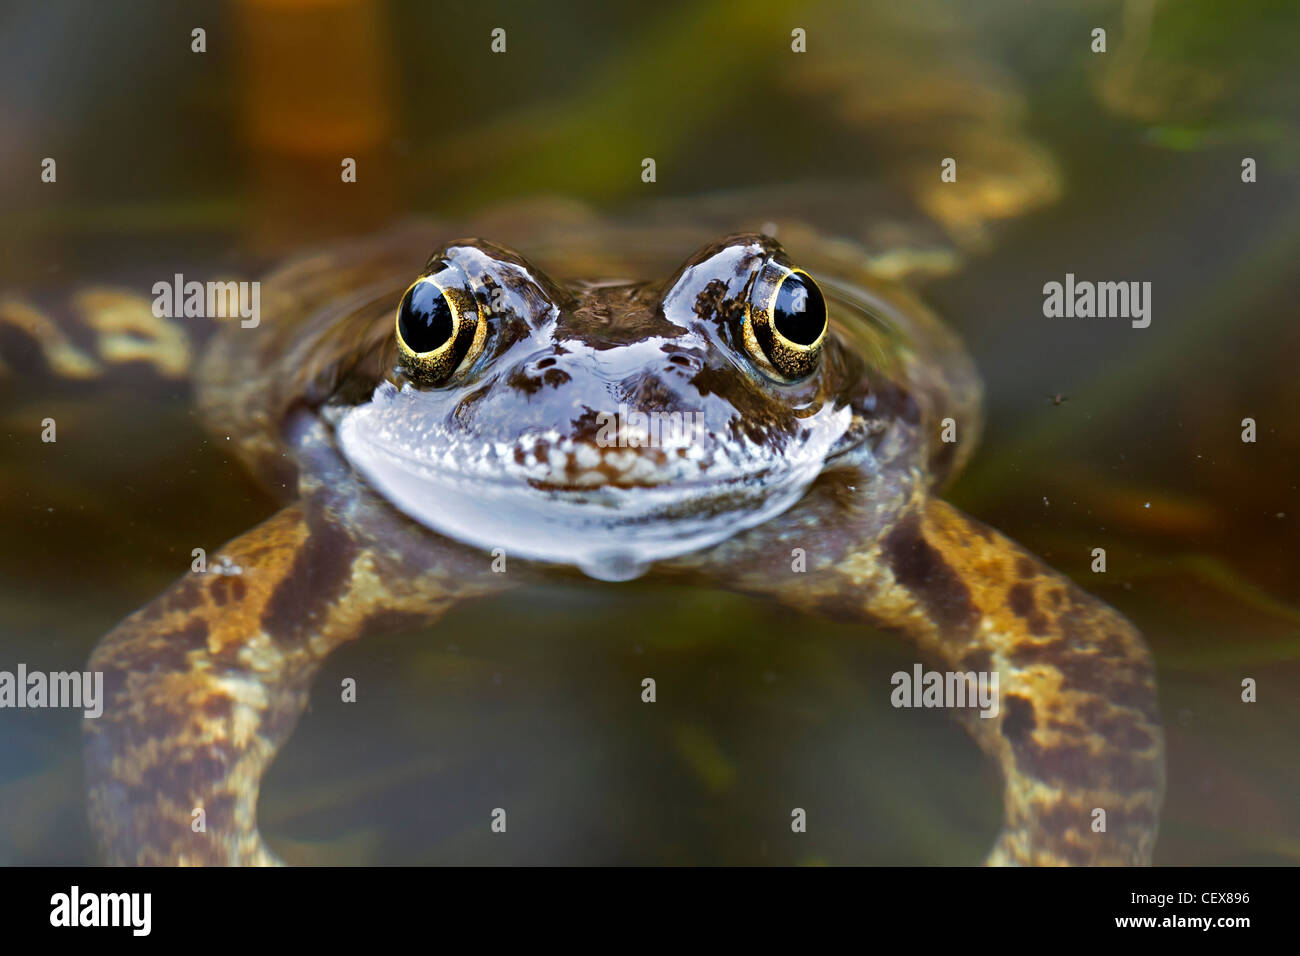 European Common Brown Frog (Rana temporaria) close-up in pond, Germany - Stock Image